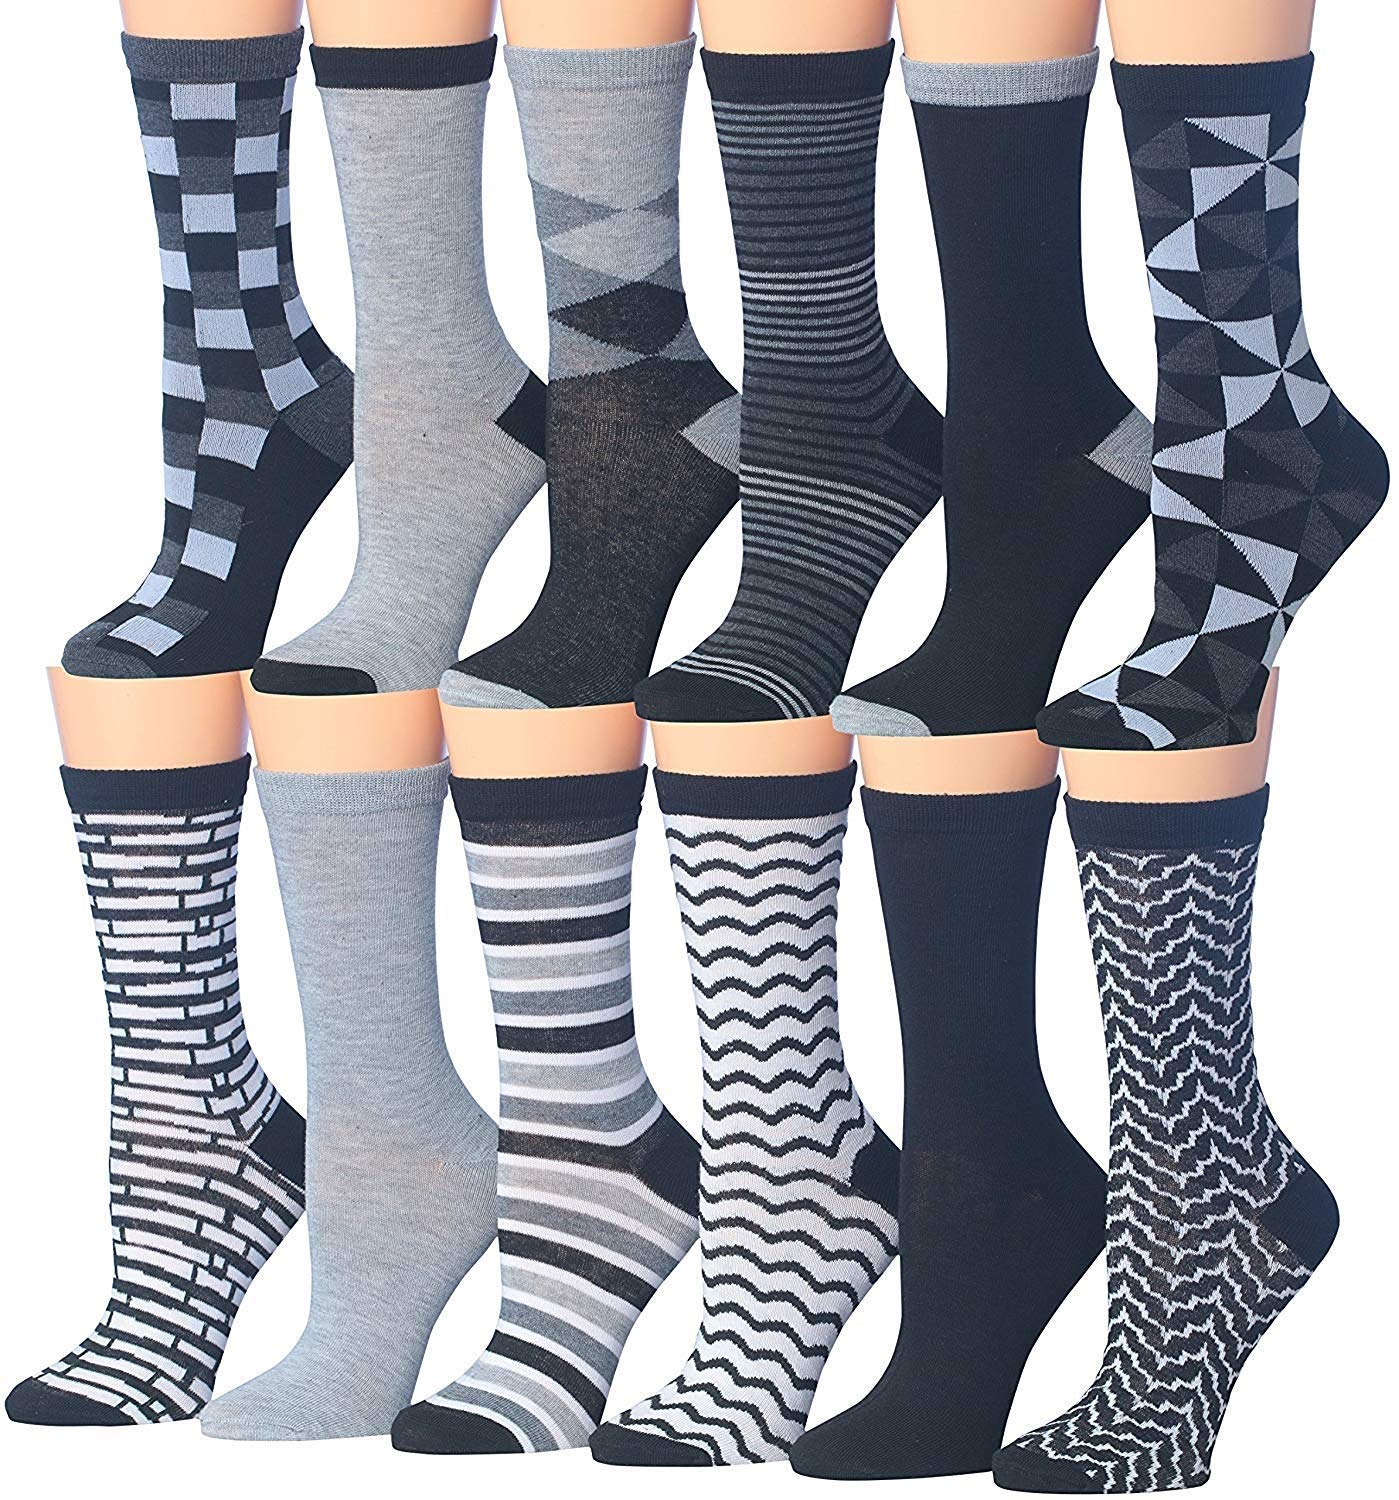 Tipi Toe Women's 12 Pairs Colorful Patterned Crew Socks (WC78-AB)